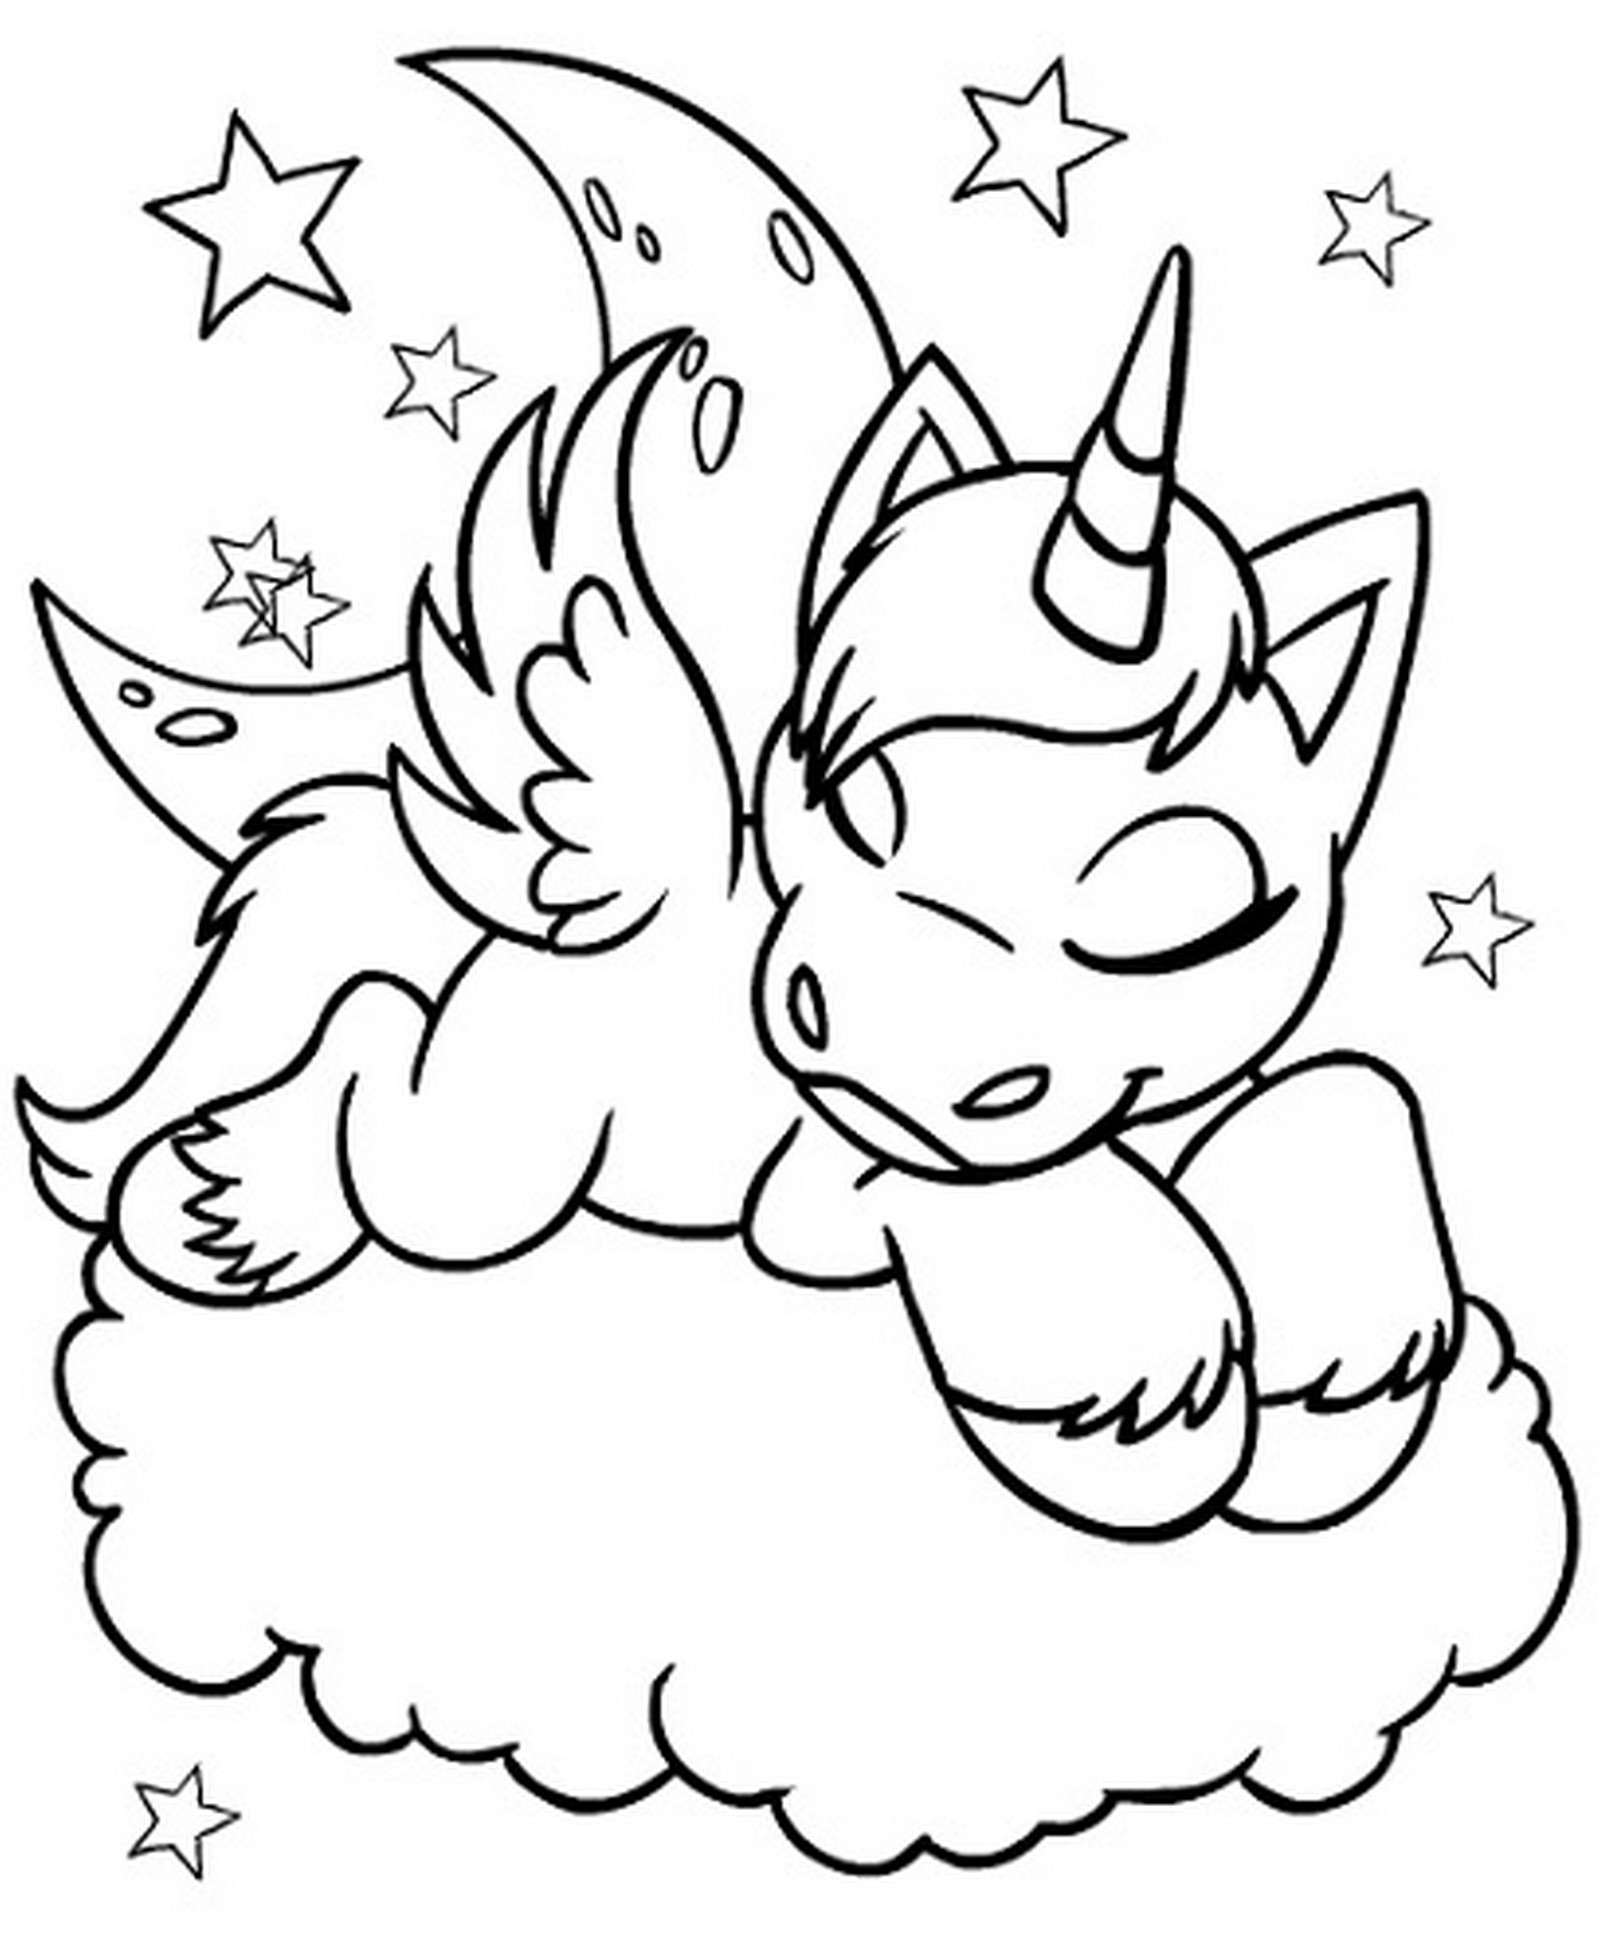 coloring worksheets unicorn coloring pages unicorn coloring pages free and printable worksheets coloring unicorn